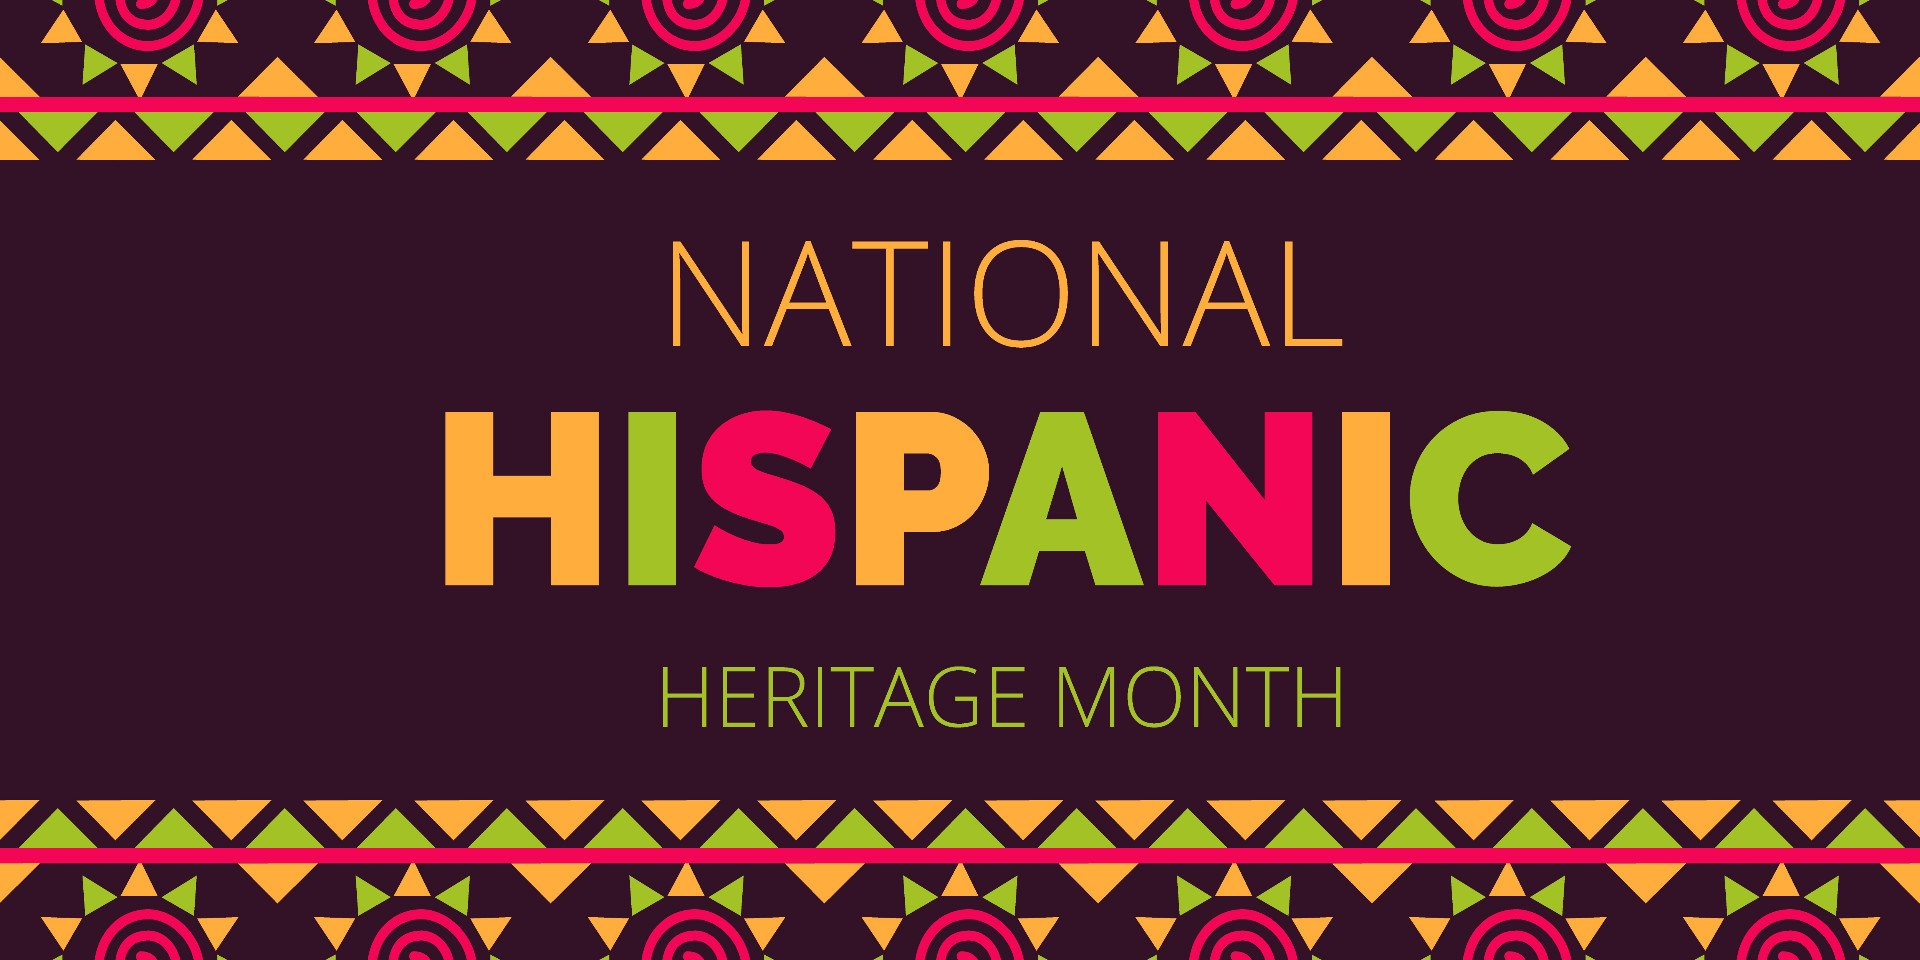 Hispanic Heritage Month: Latino Doctors, Scientists & Educators